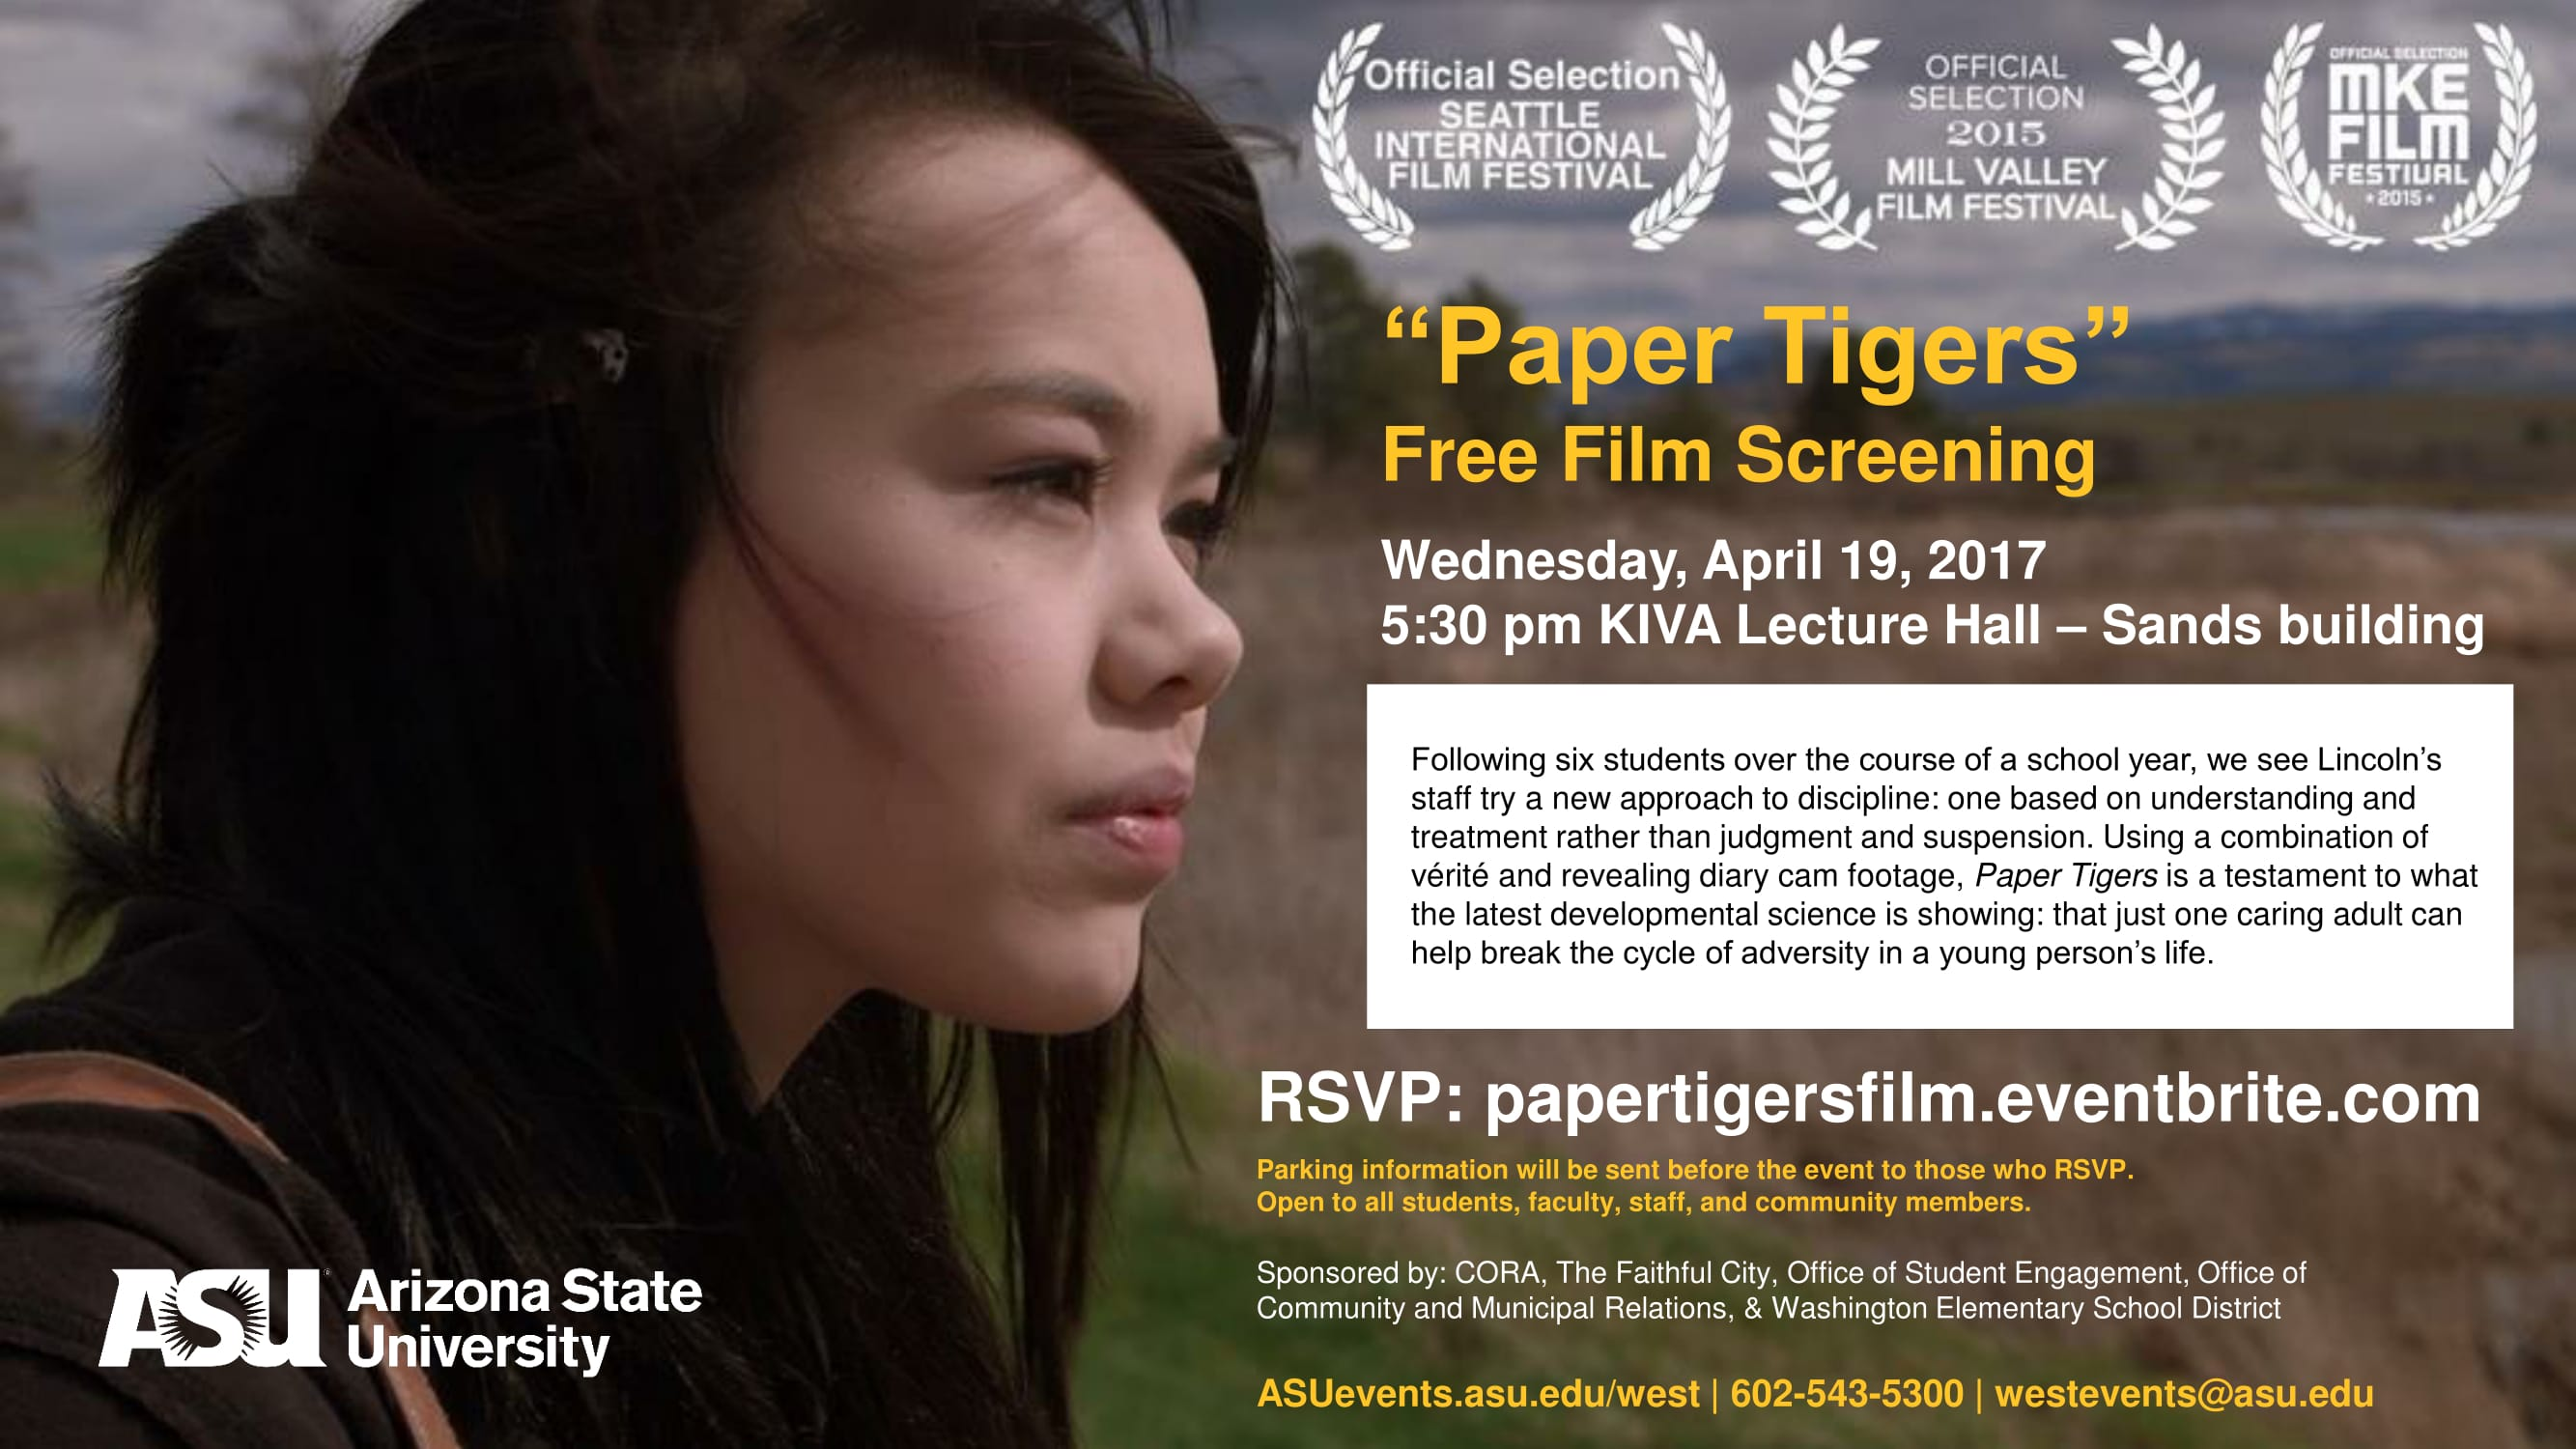 Come To The Paper Tigers Free Movie Screening On Any Of ASU's Four Campuses